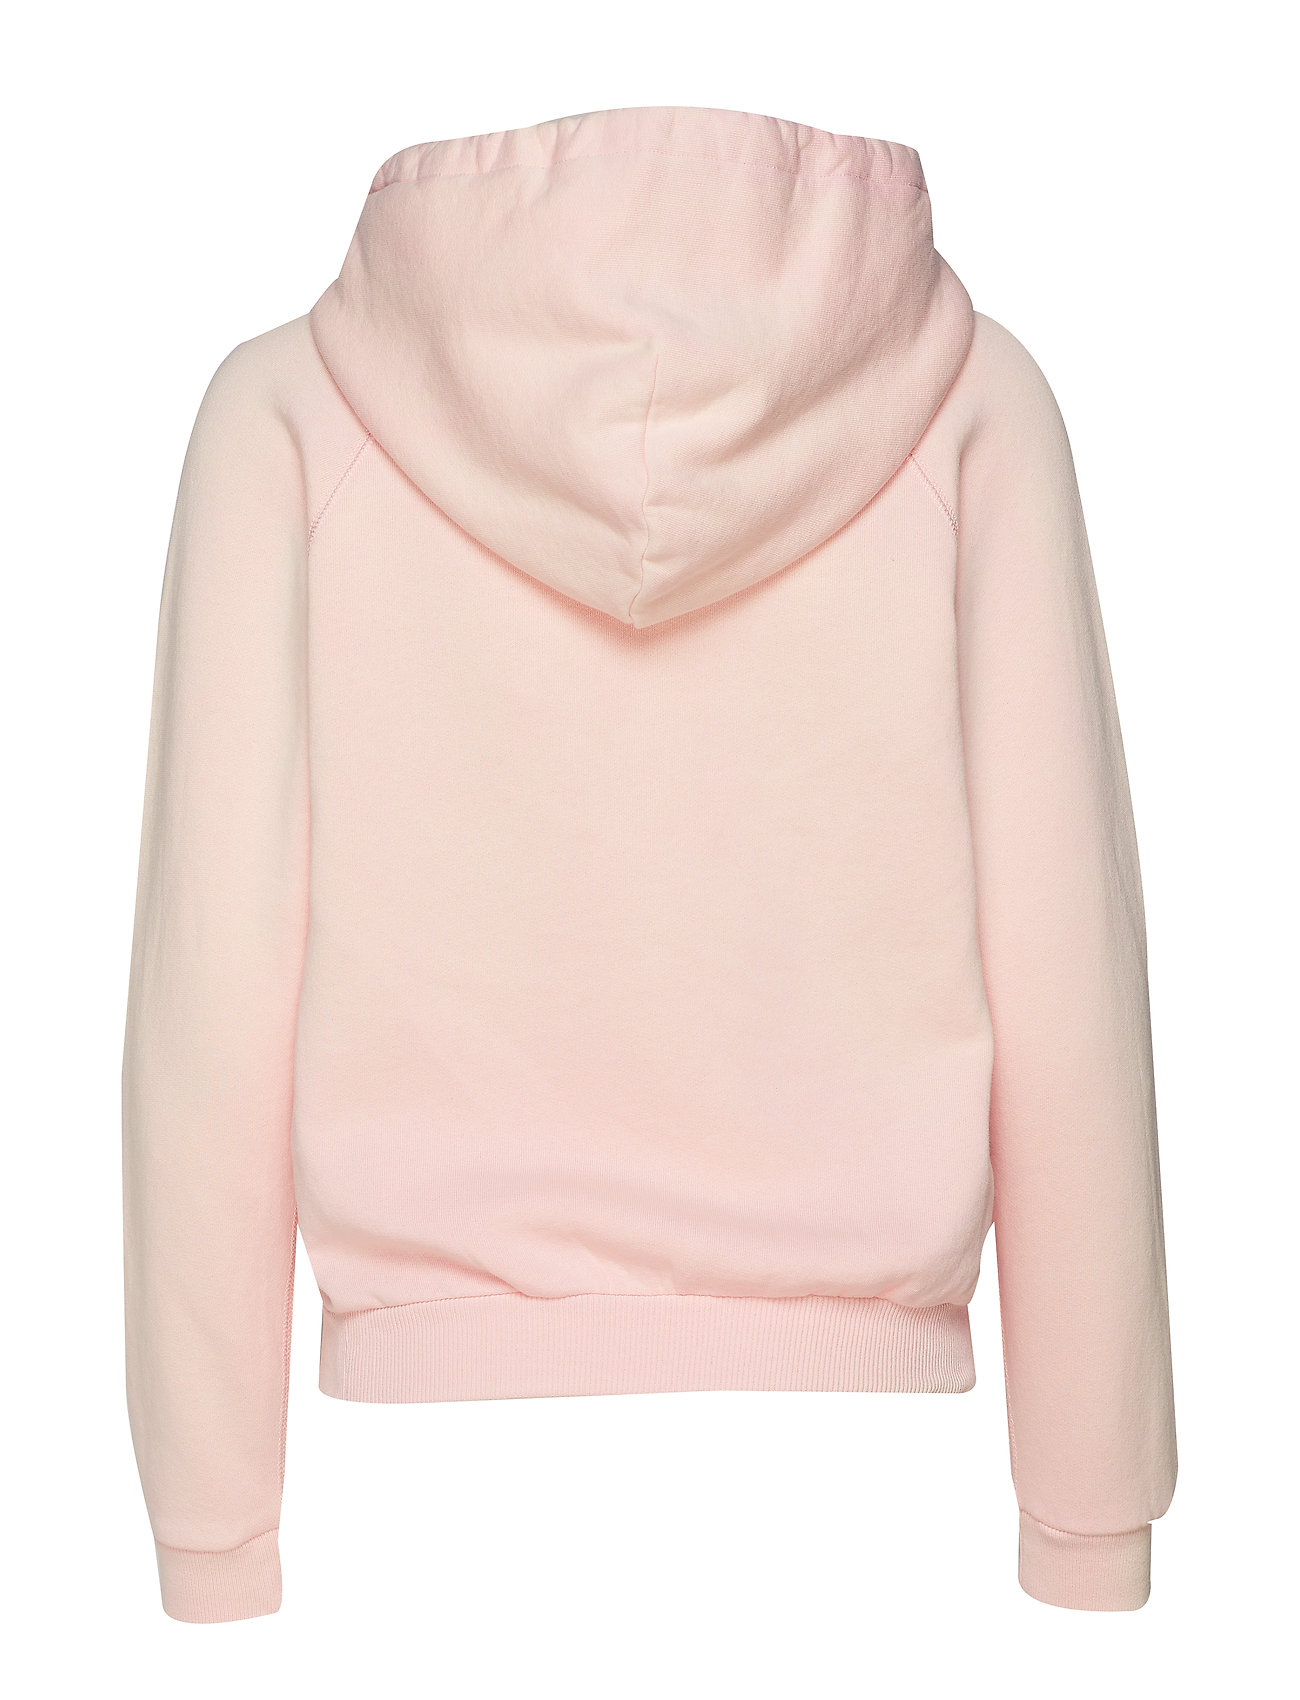 SandPolo Fleece Lauren Ralph Big Pony Hoodiepink W29IDEH